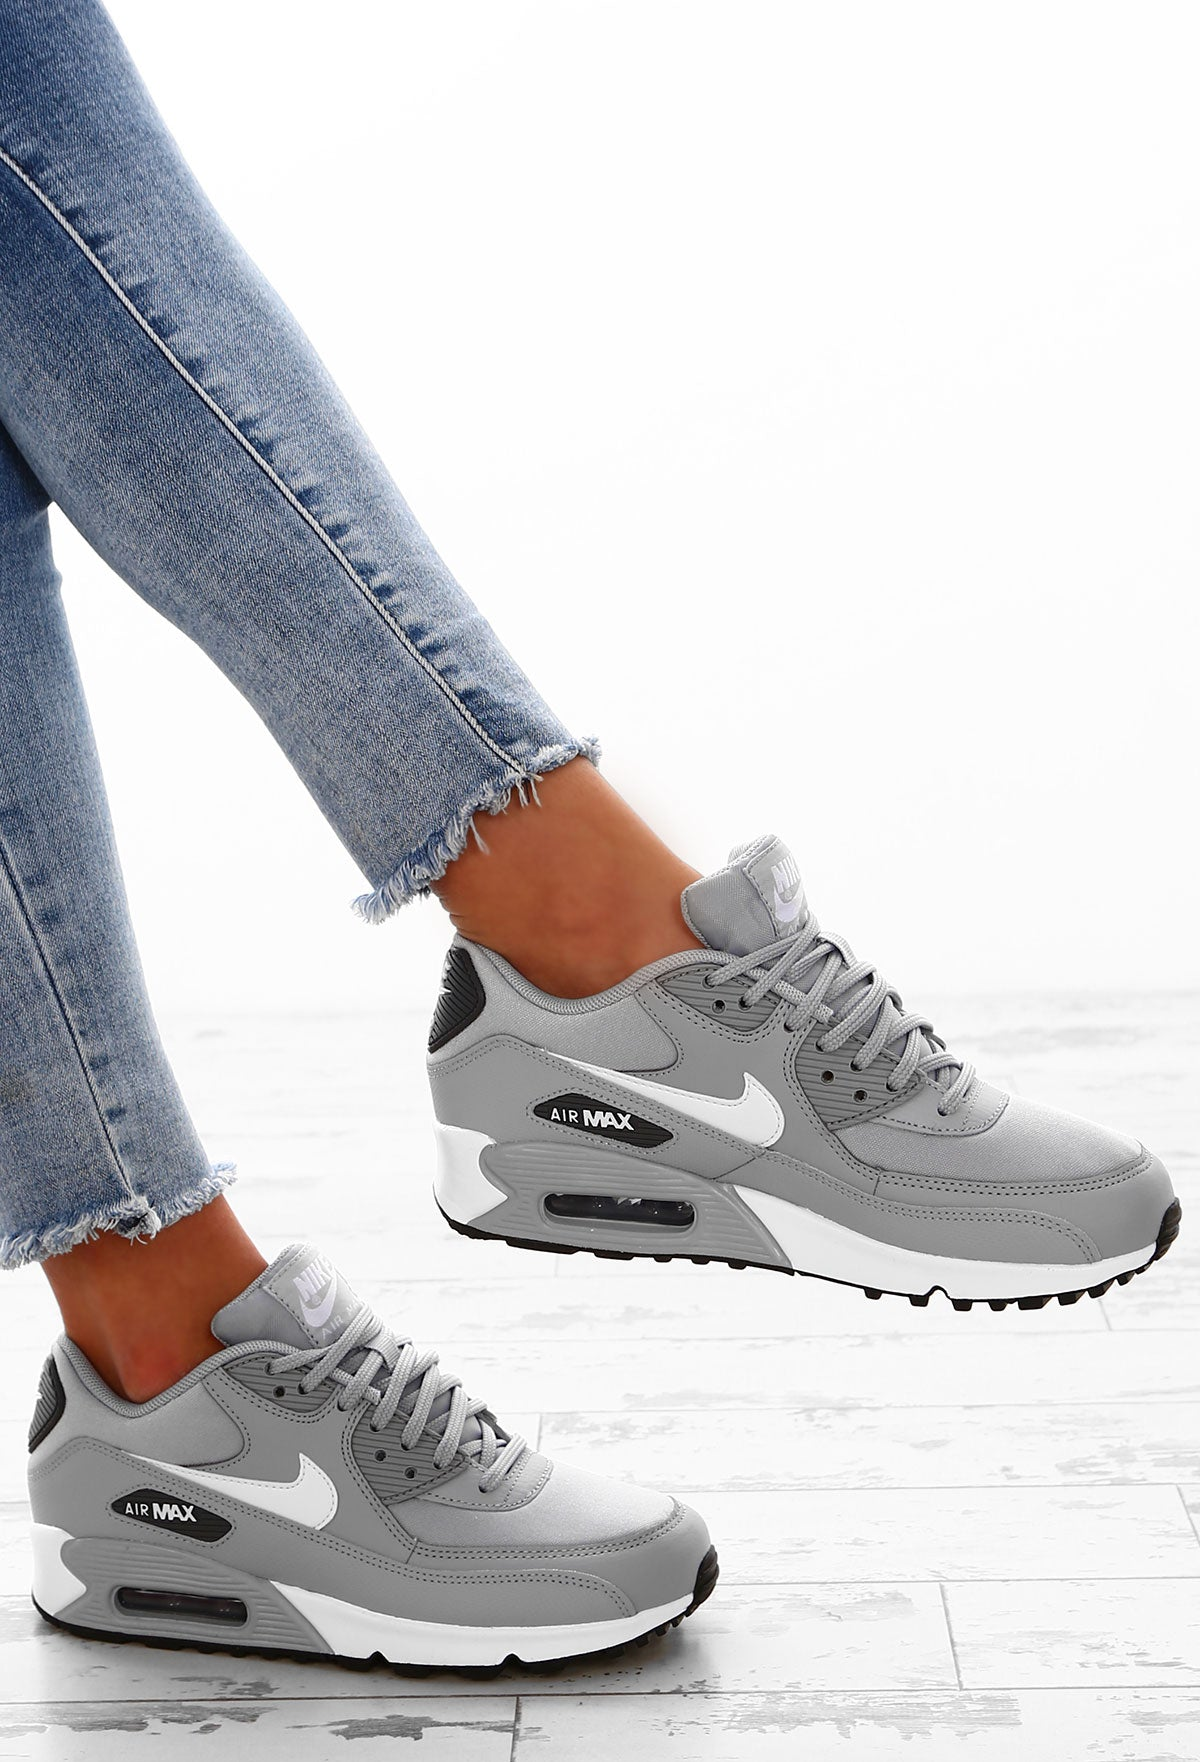 6abebc740fa Nike Air Max 90 Grey Trainers – Pink Boutique UK